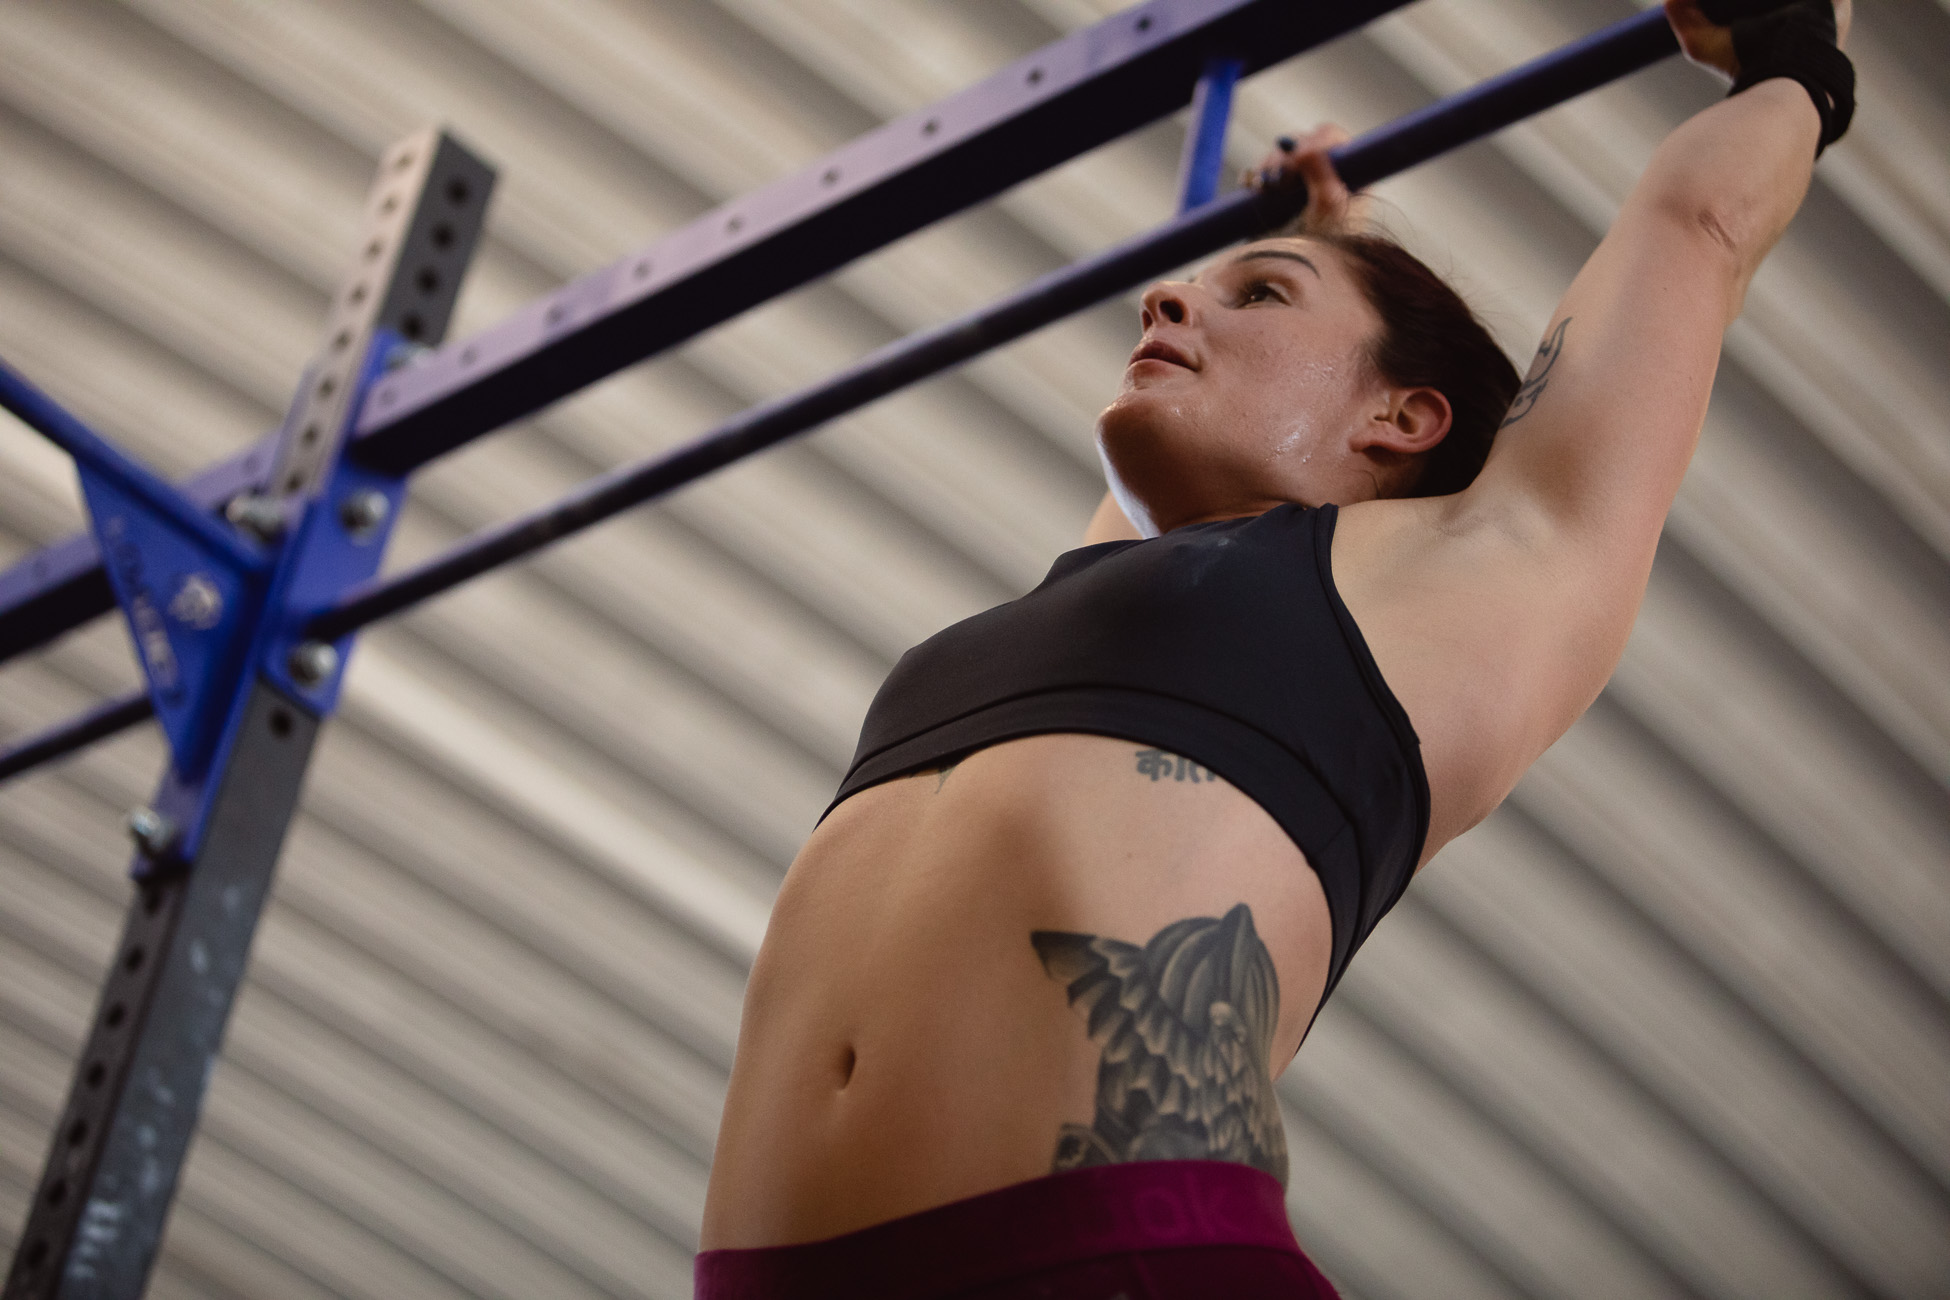 crossfit-games-open-fitness-sport-athlete-photography-006.jpg